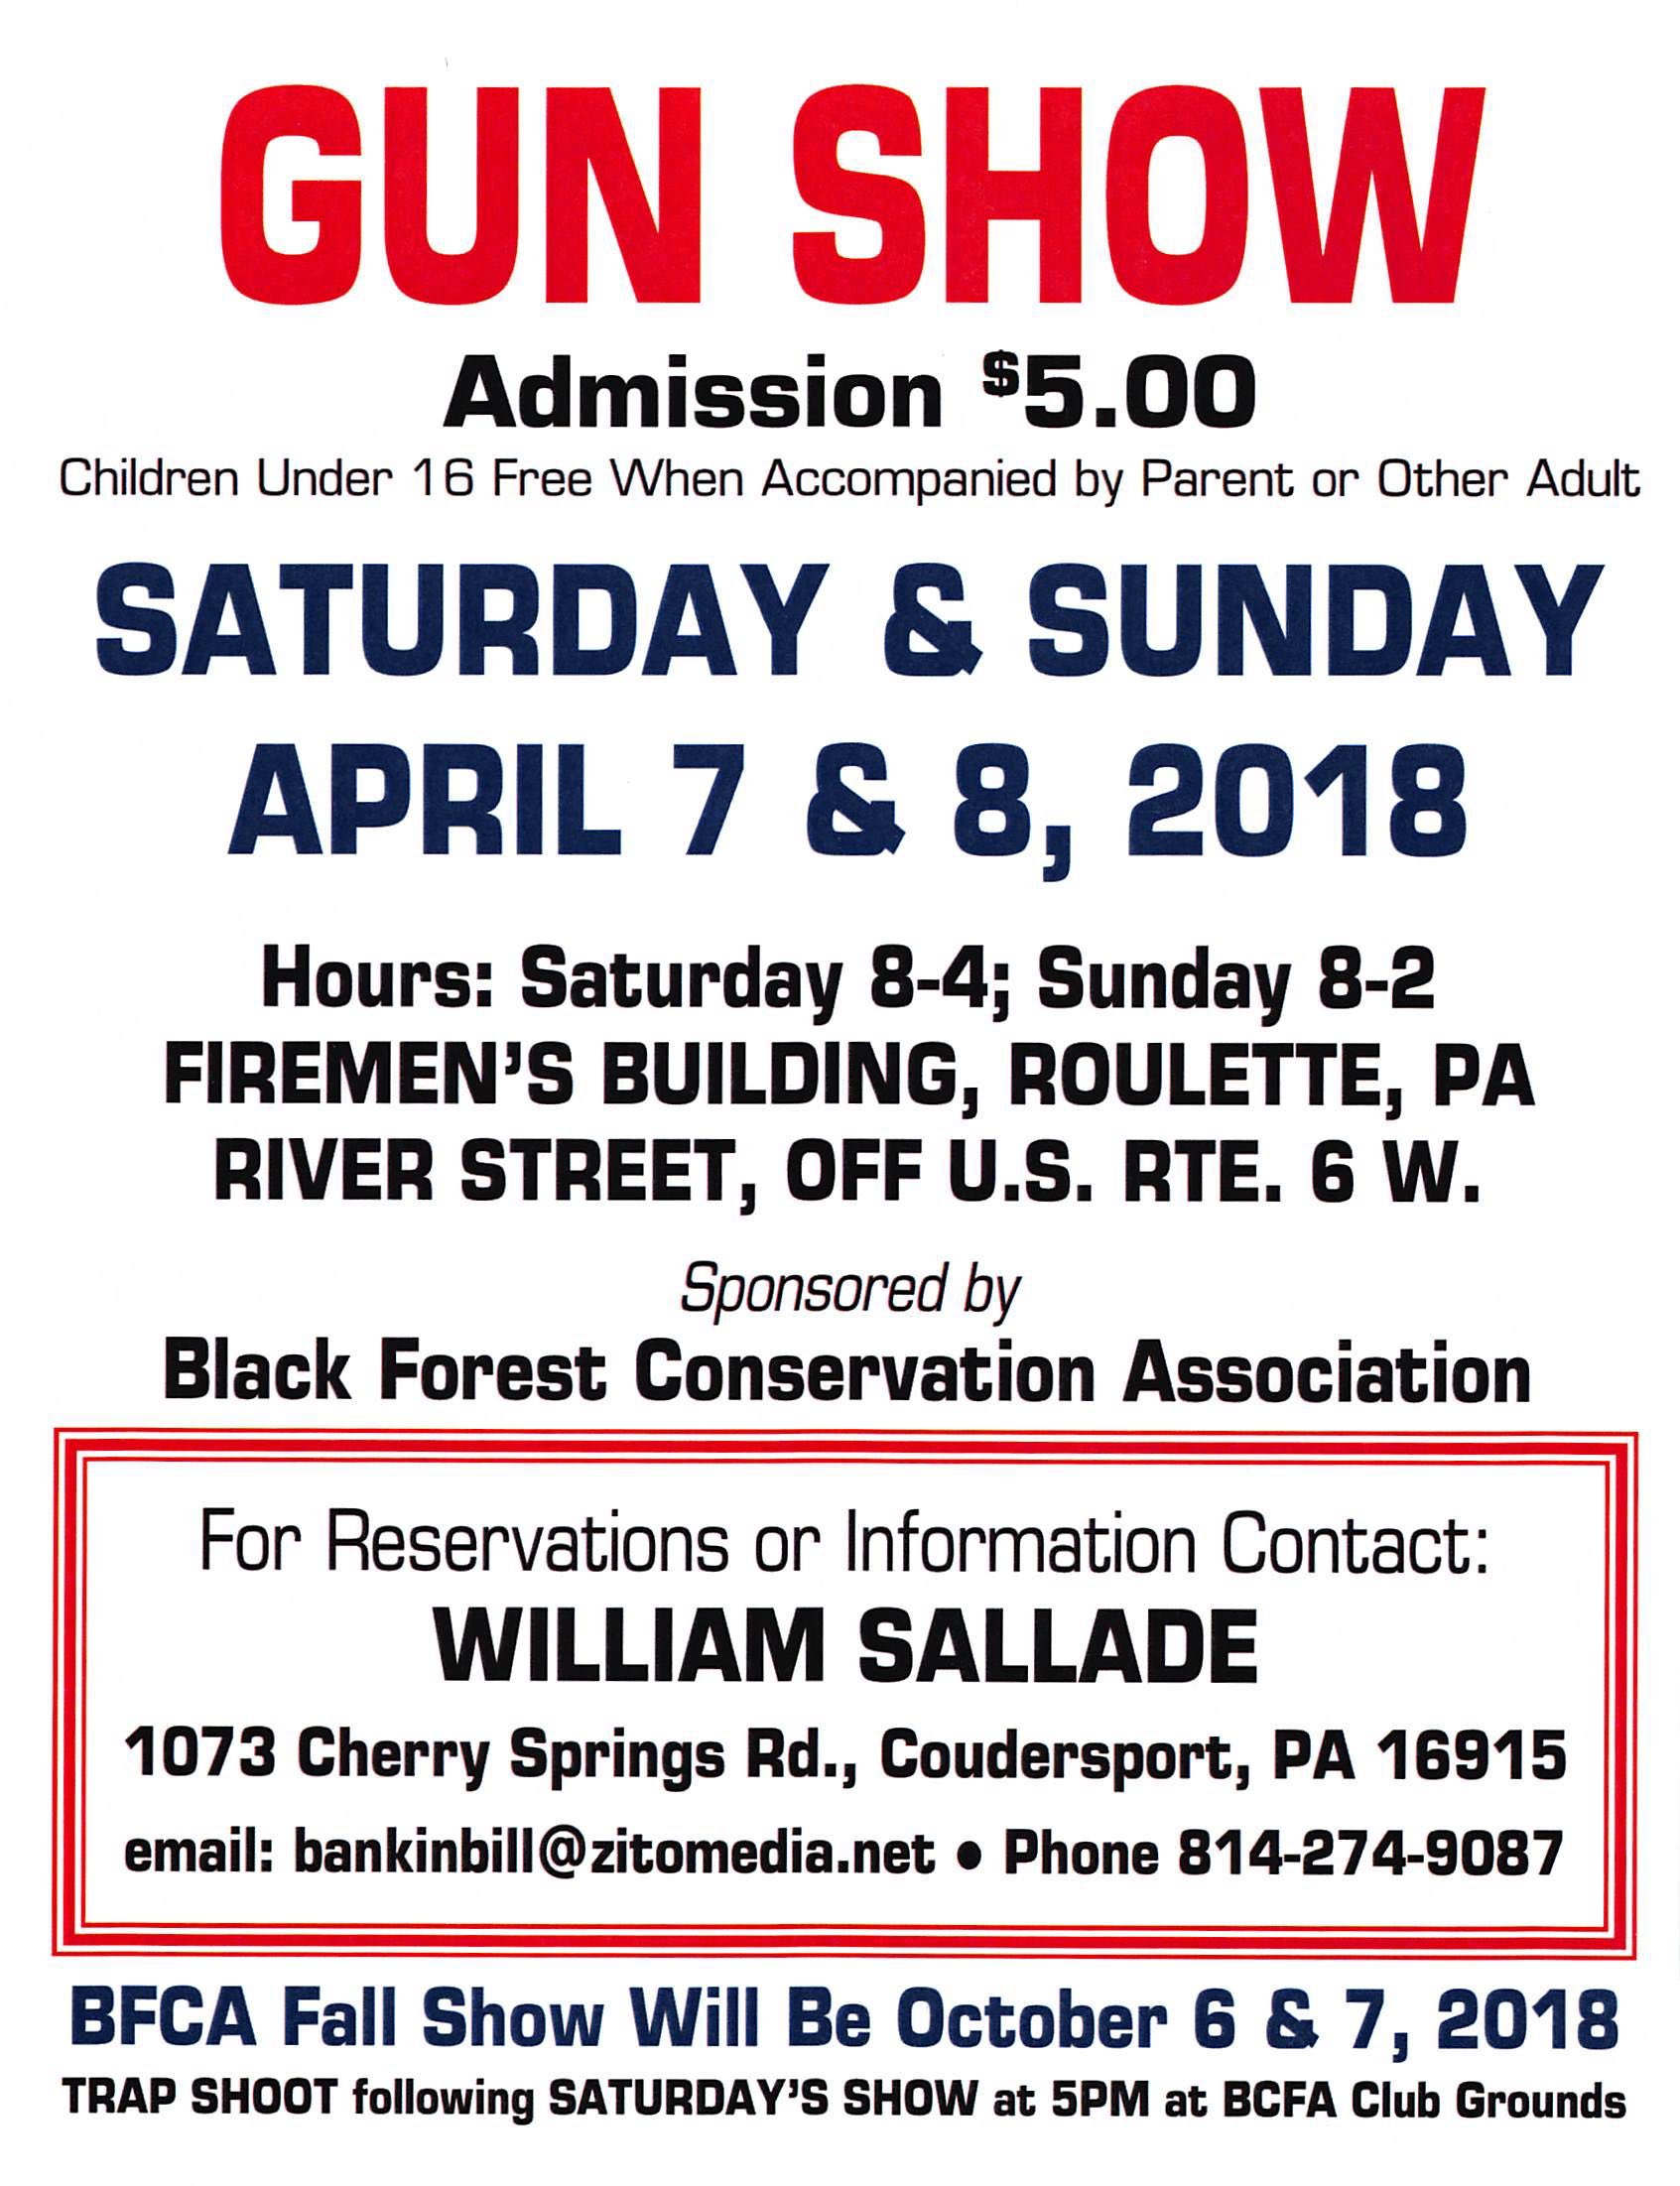 Coudersport, PA gun show sponsored by the Black Forest Conservation Association